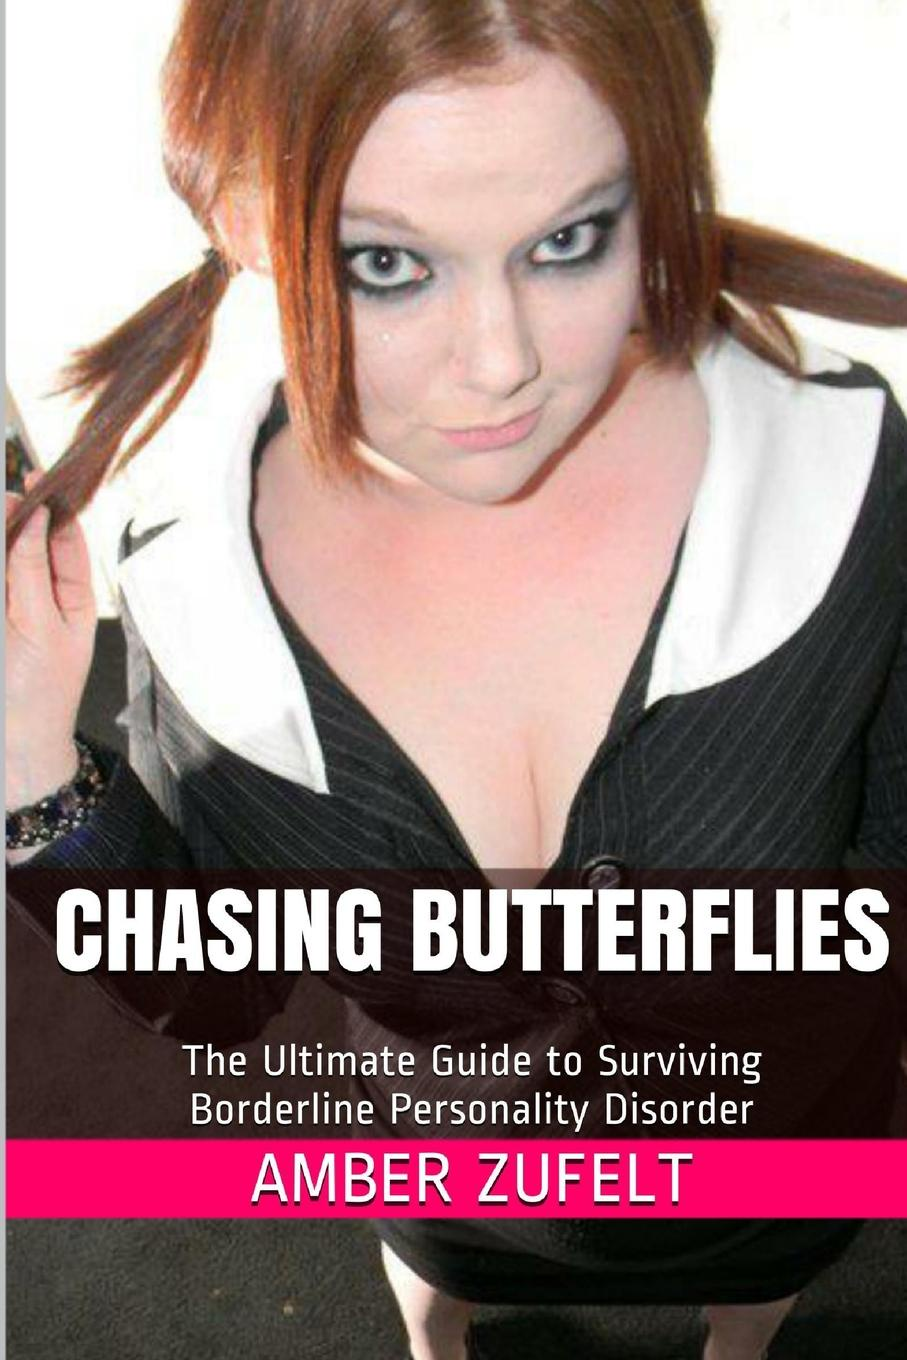 Amber Zufelt Chasing Butterflies. The Ultimate Guide to Surviving Borderline Personality Disorder